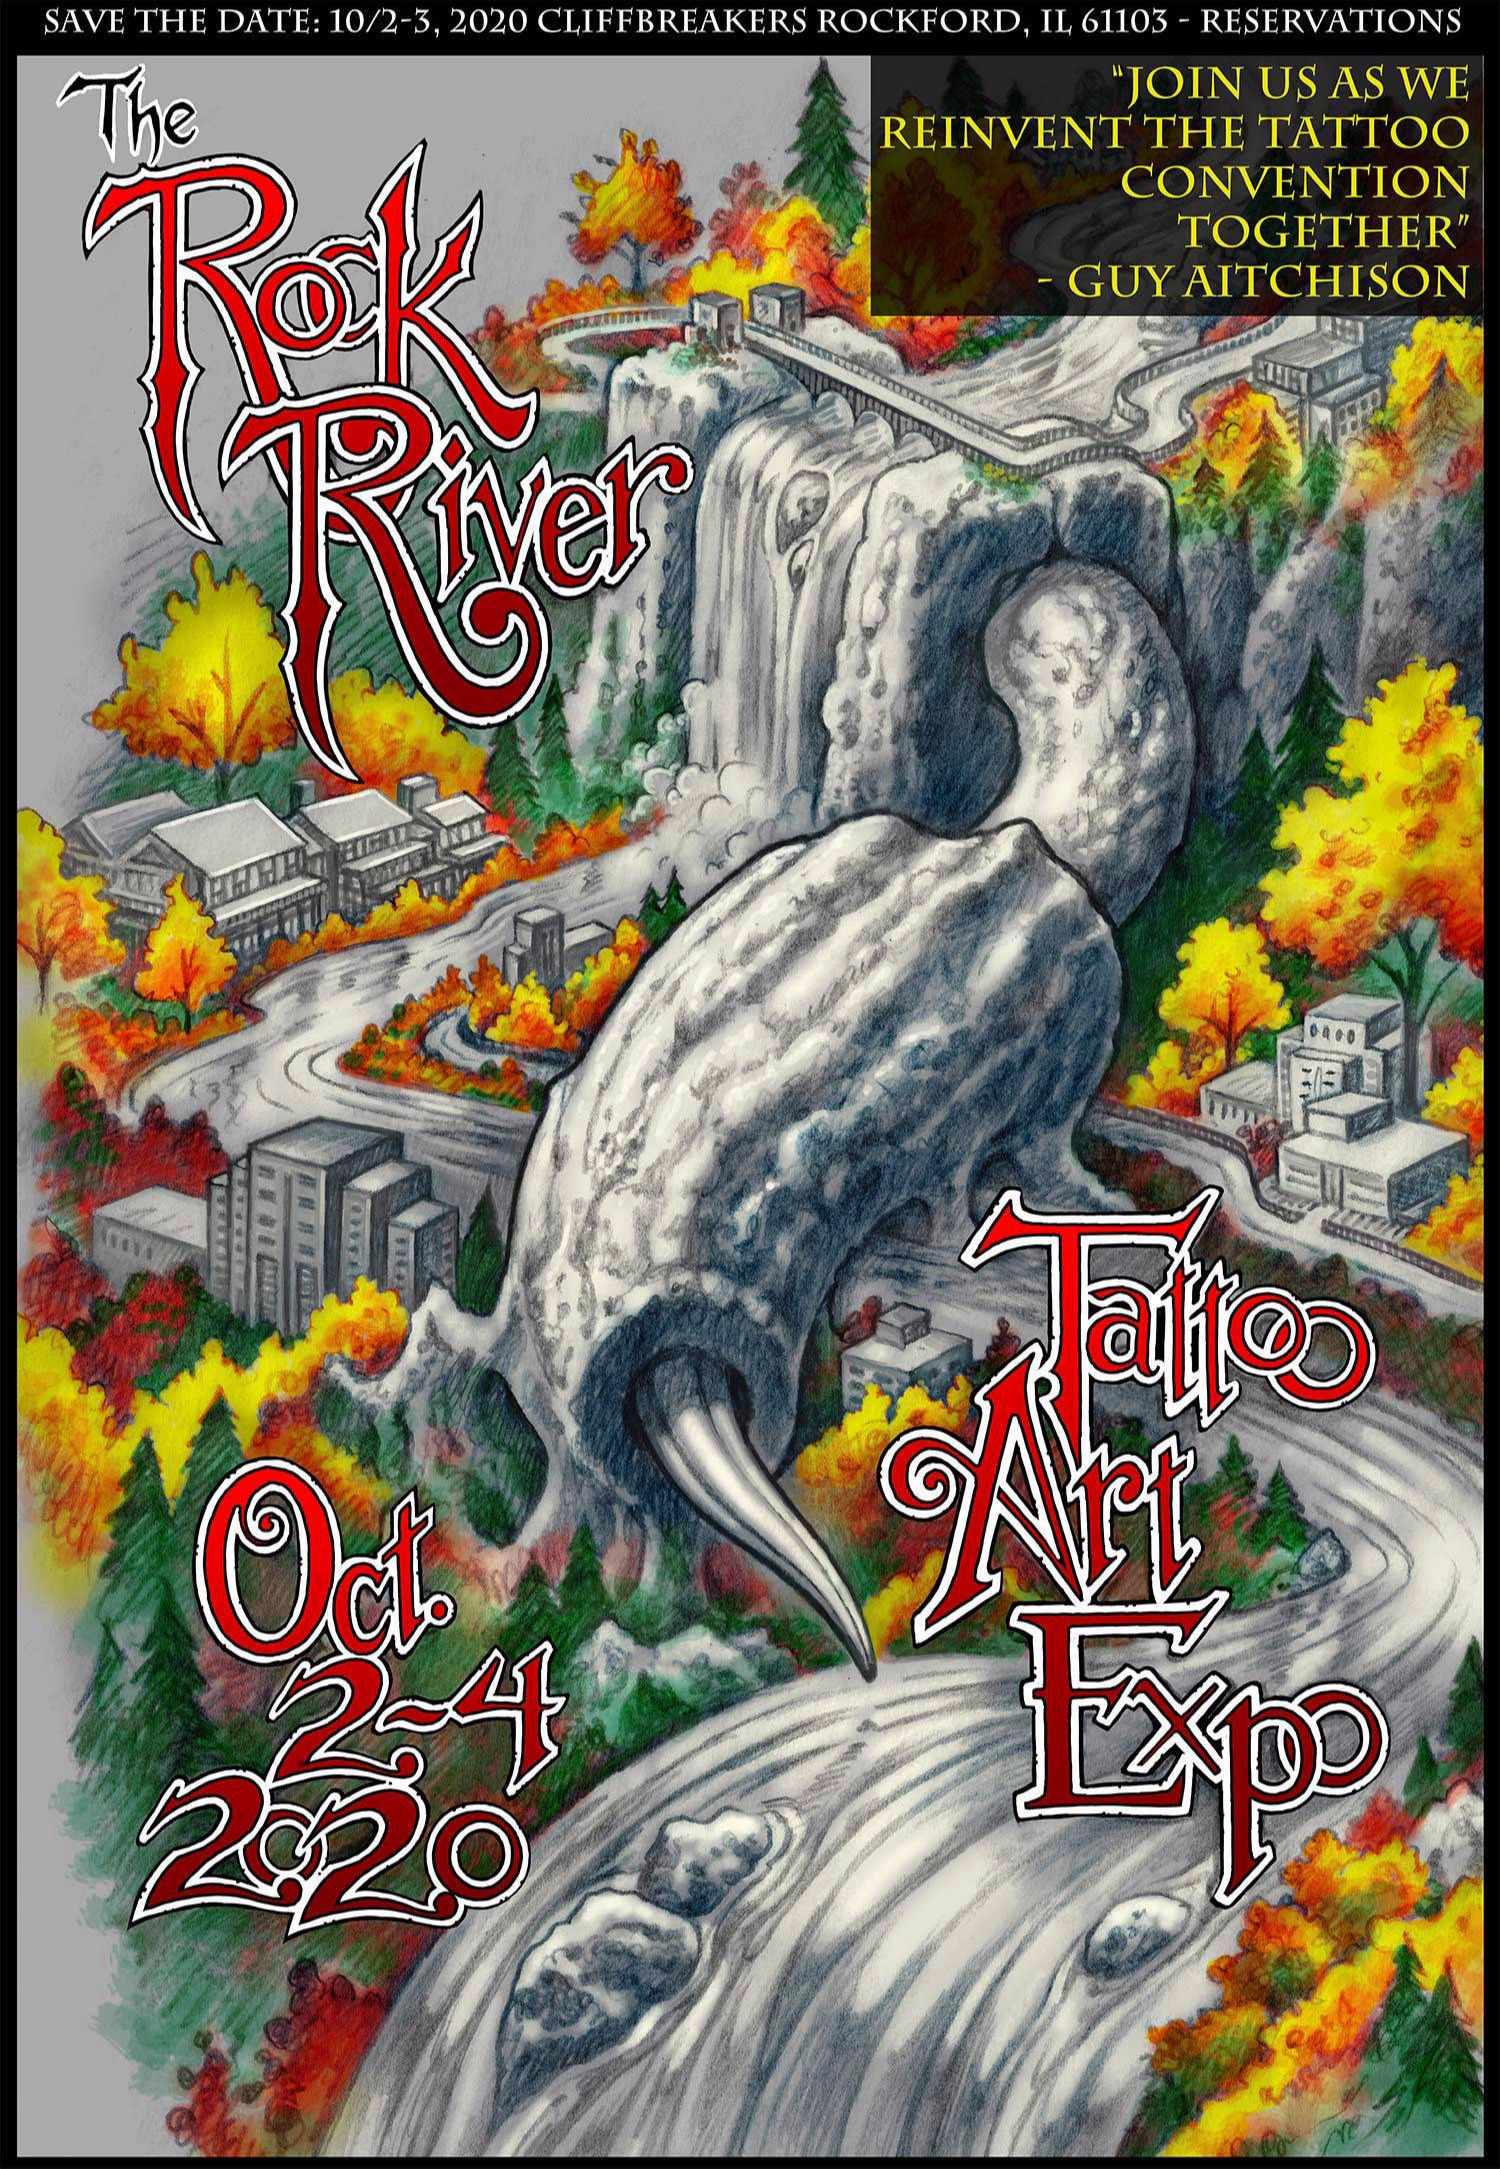 Rock River Tattoo Art Expo